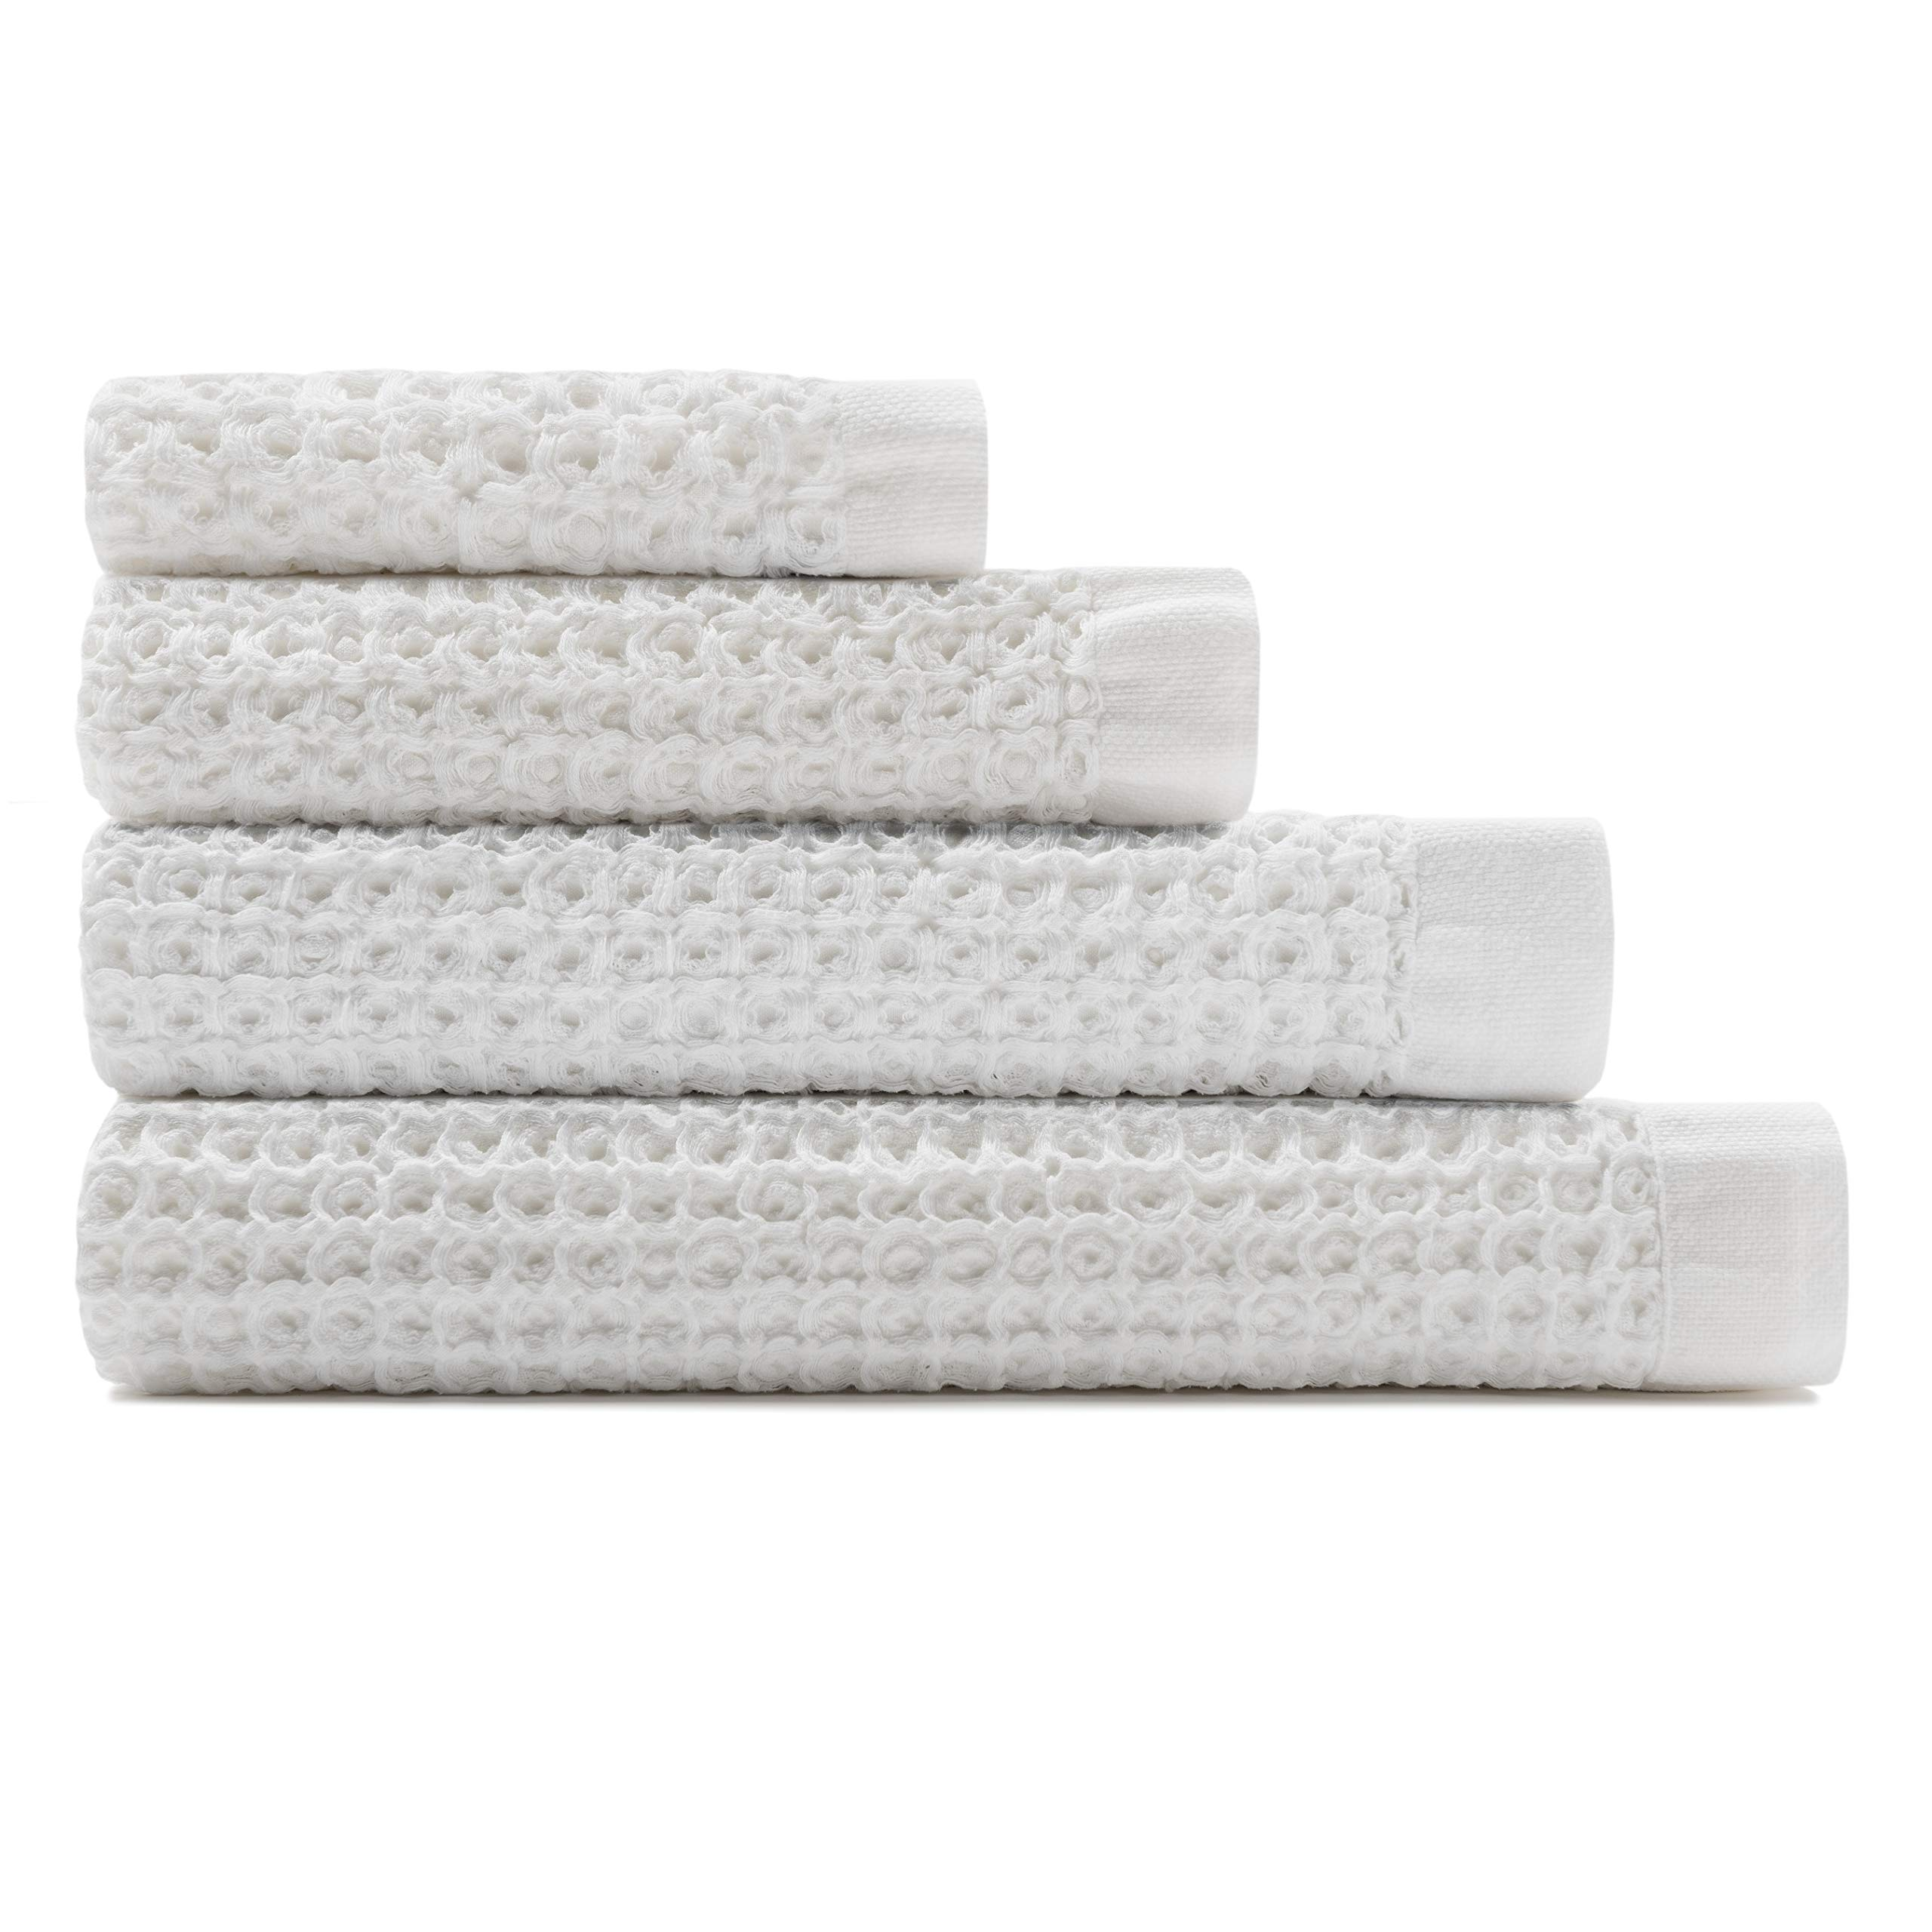 The Onsen Complete Set - 100% Supima Cotton, Lightweight, White